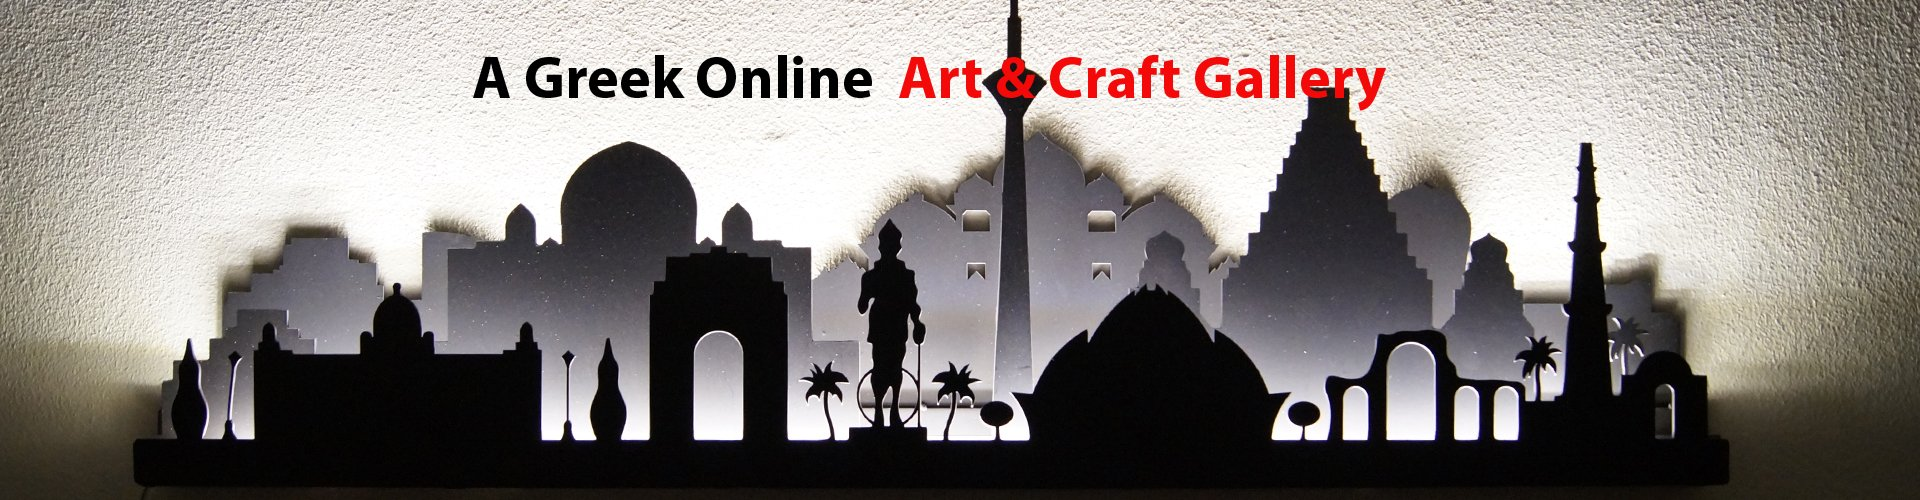 a greek online art & craft gallery